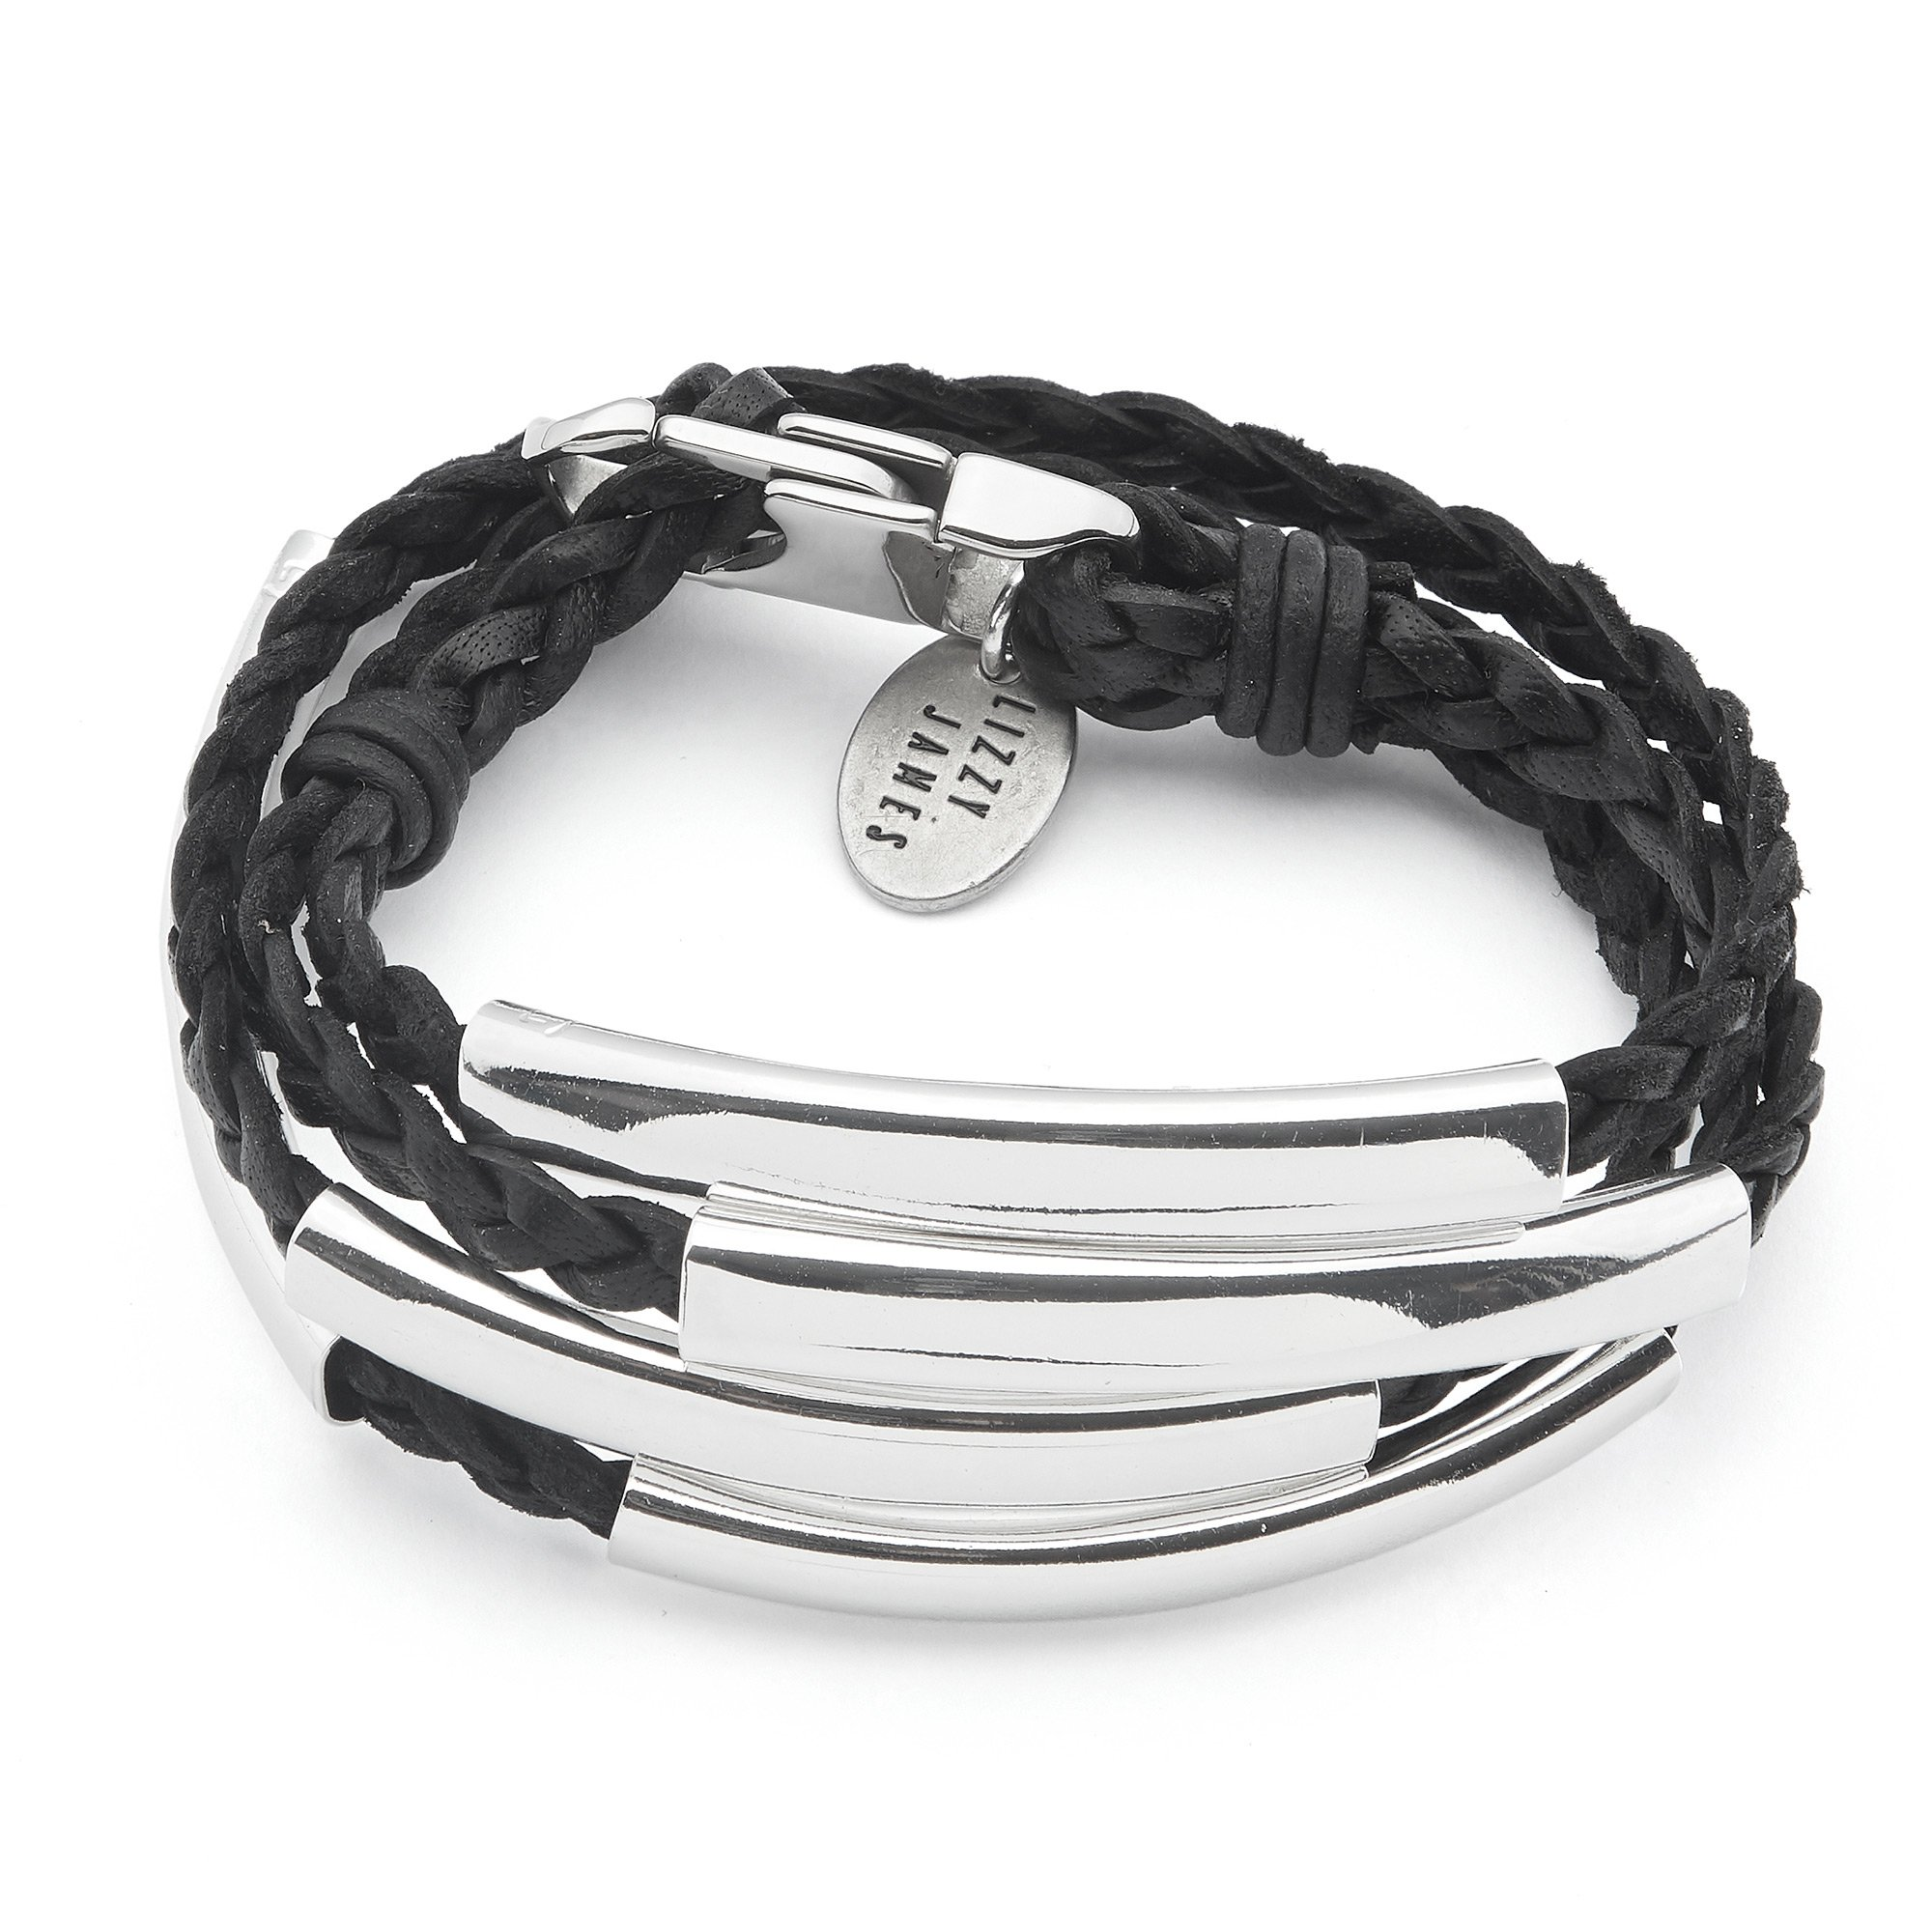 Lizzy James Mini Addison Wrap Bracelet Silverplate in Natural Black Braided Leather (Tiny)